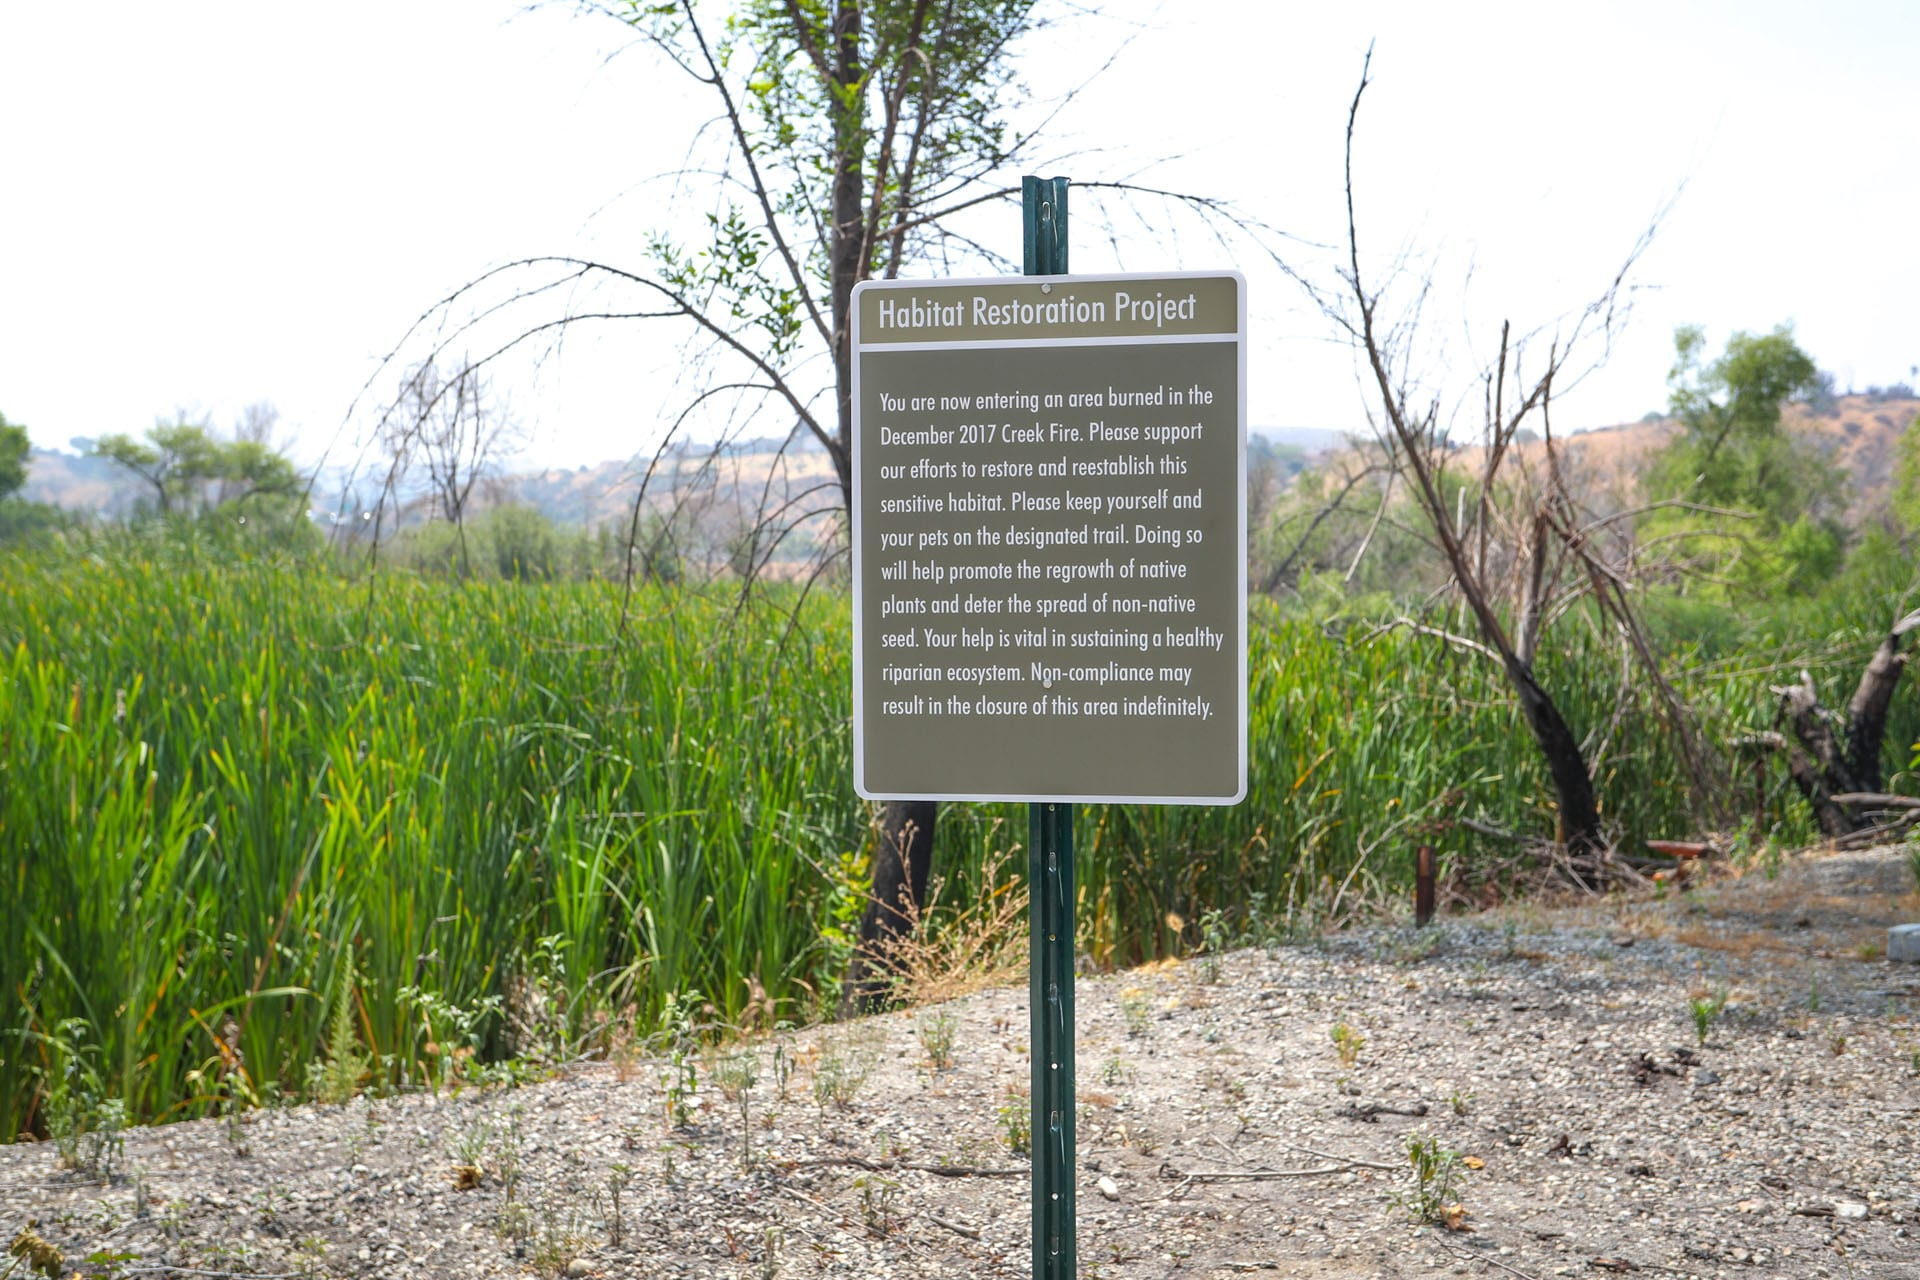 Habitat Restoration Project sign amongst the tall grass